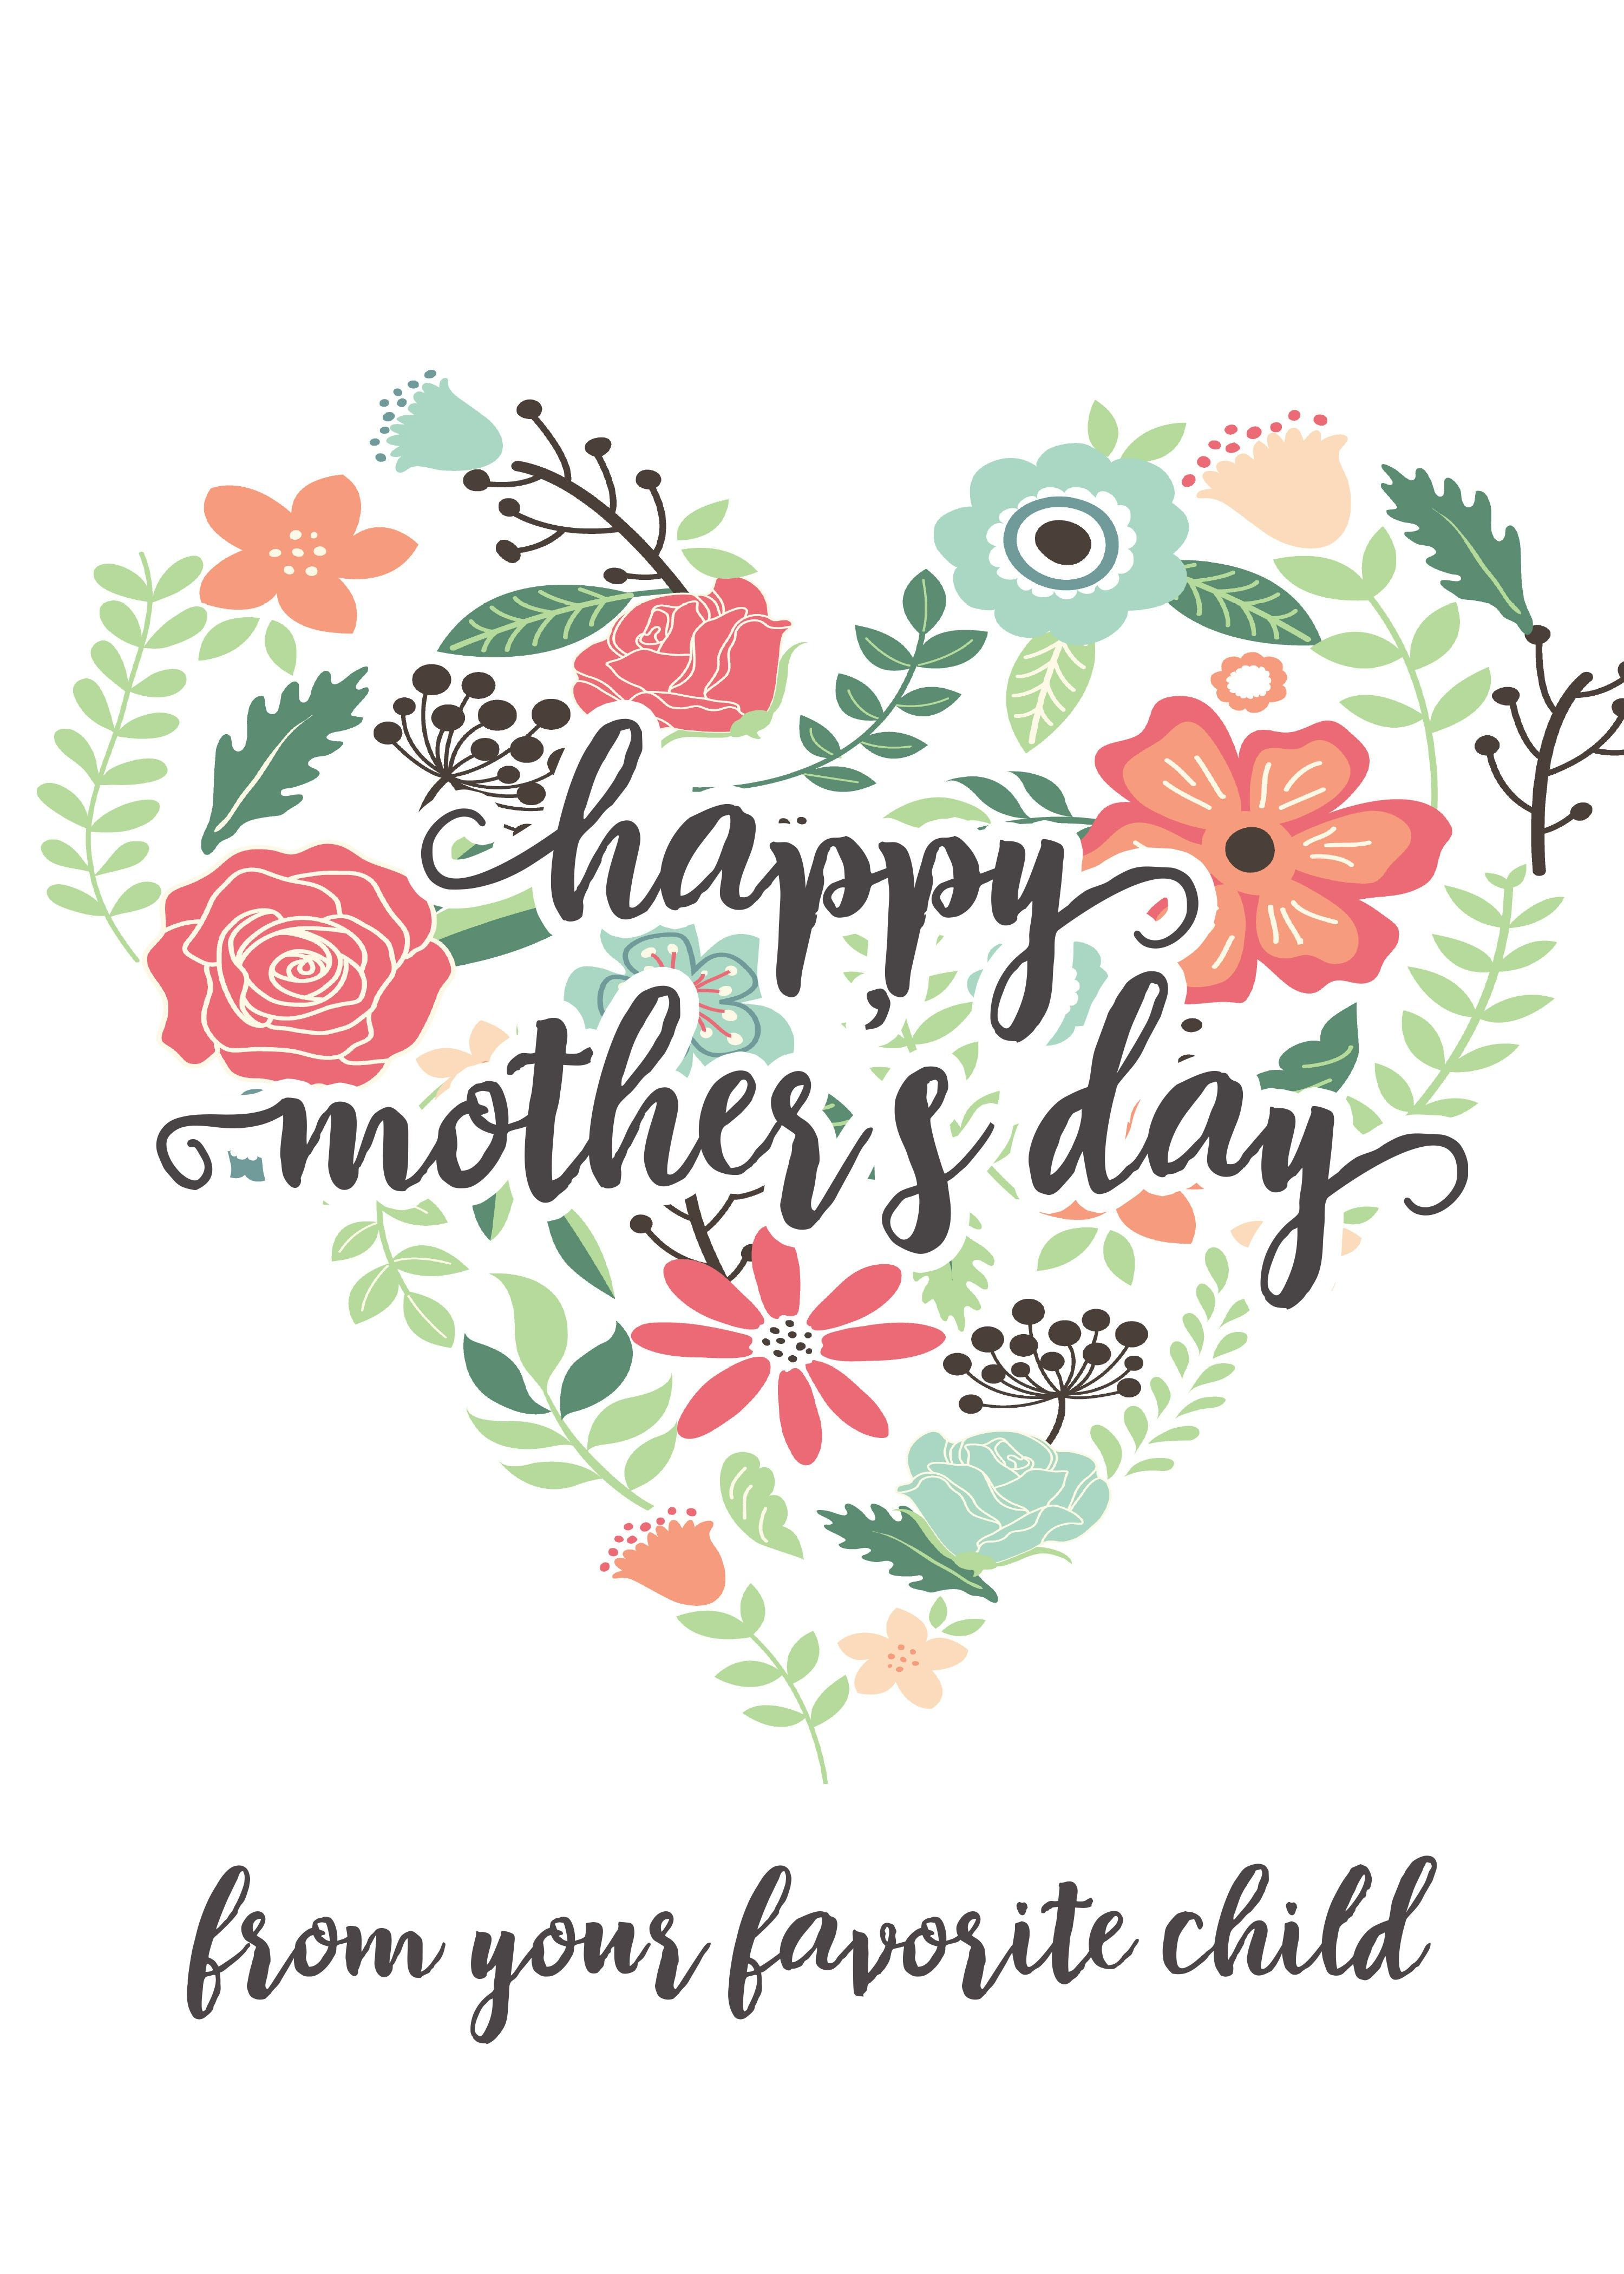 happy mothers day messages free printable mothers day cards forkidsandmoms happy mothers day for kids and moms the modern parents guide to life blog [ 3000 x 4200 Pixel ]